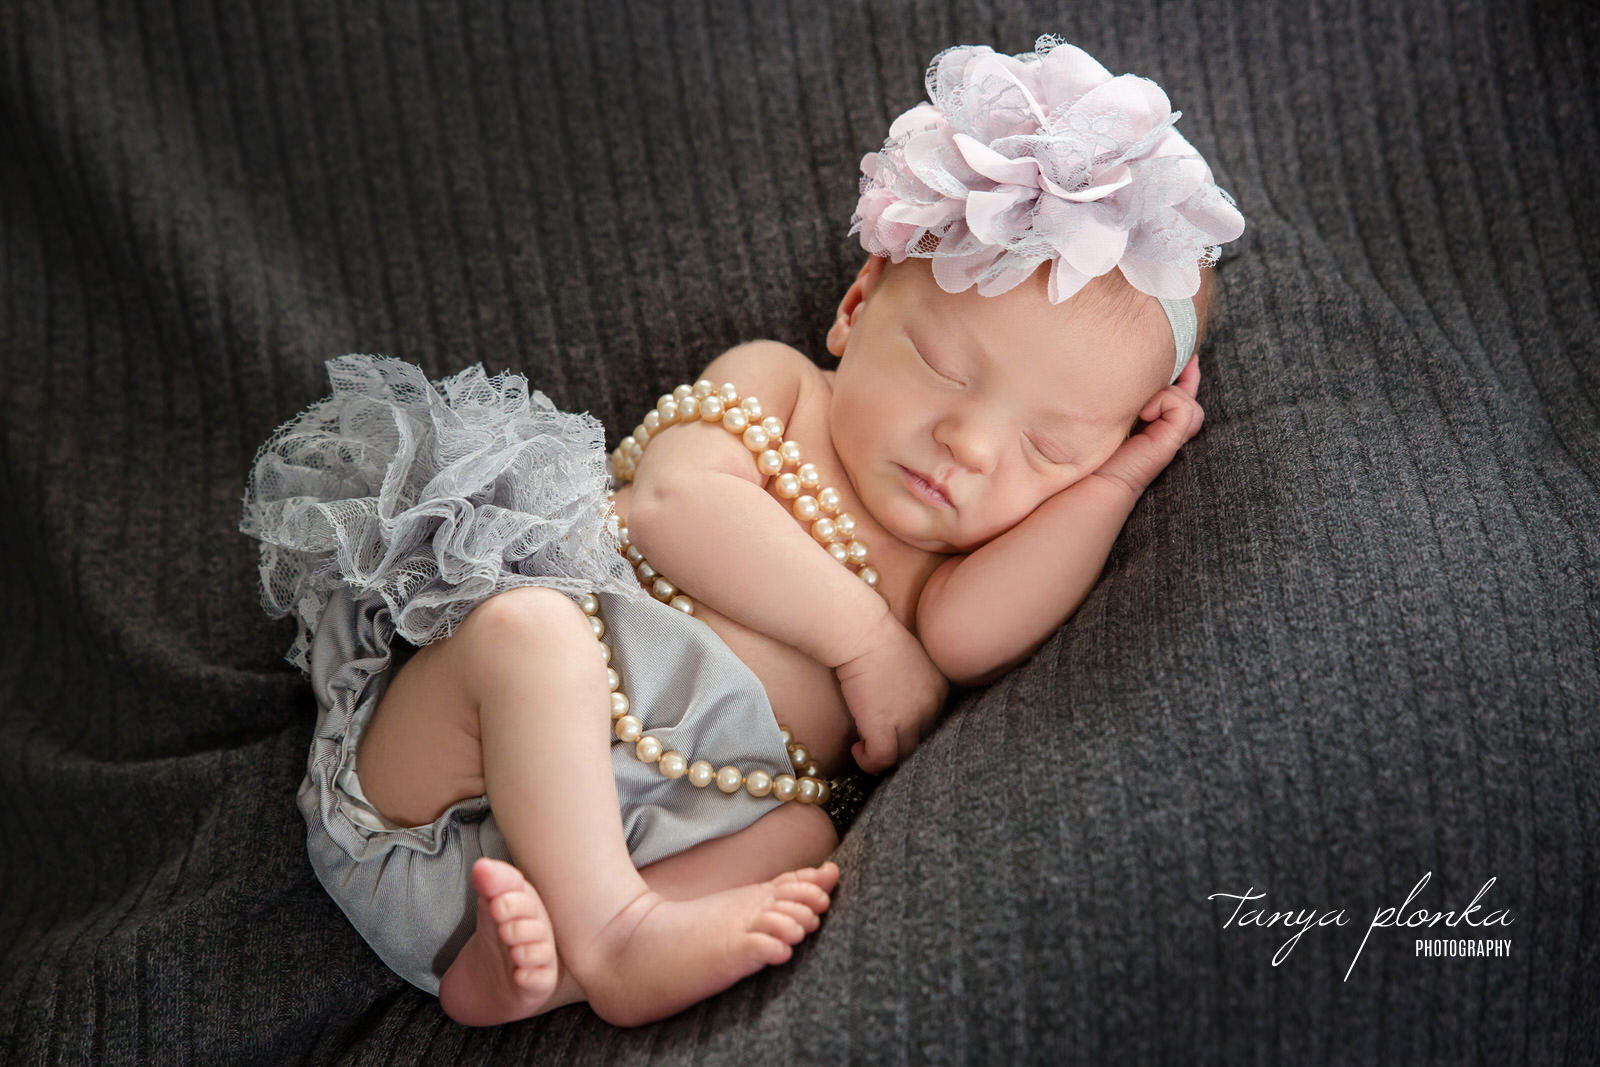 Sleeping baby wrapped in pearls